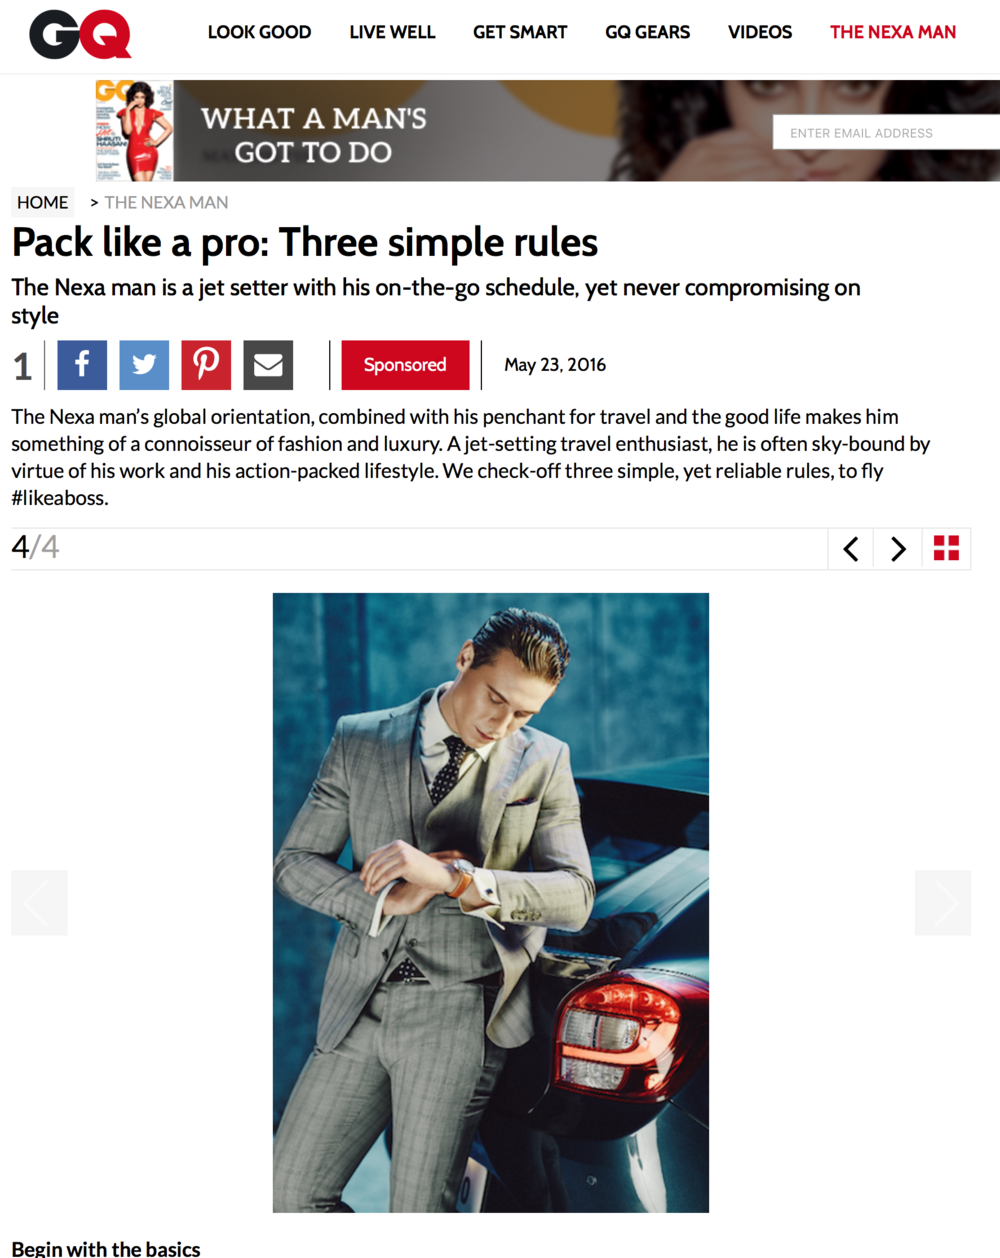 http://www.gqindia.com/the-nexa-man/pack-like-a-pro-three-simple-rules/#s-cust3